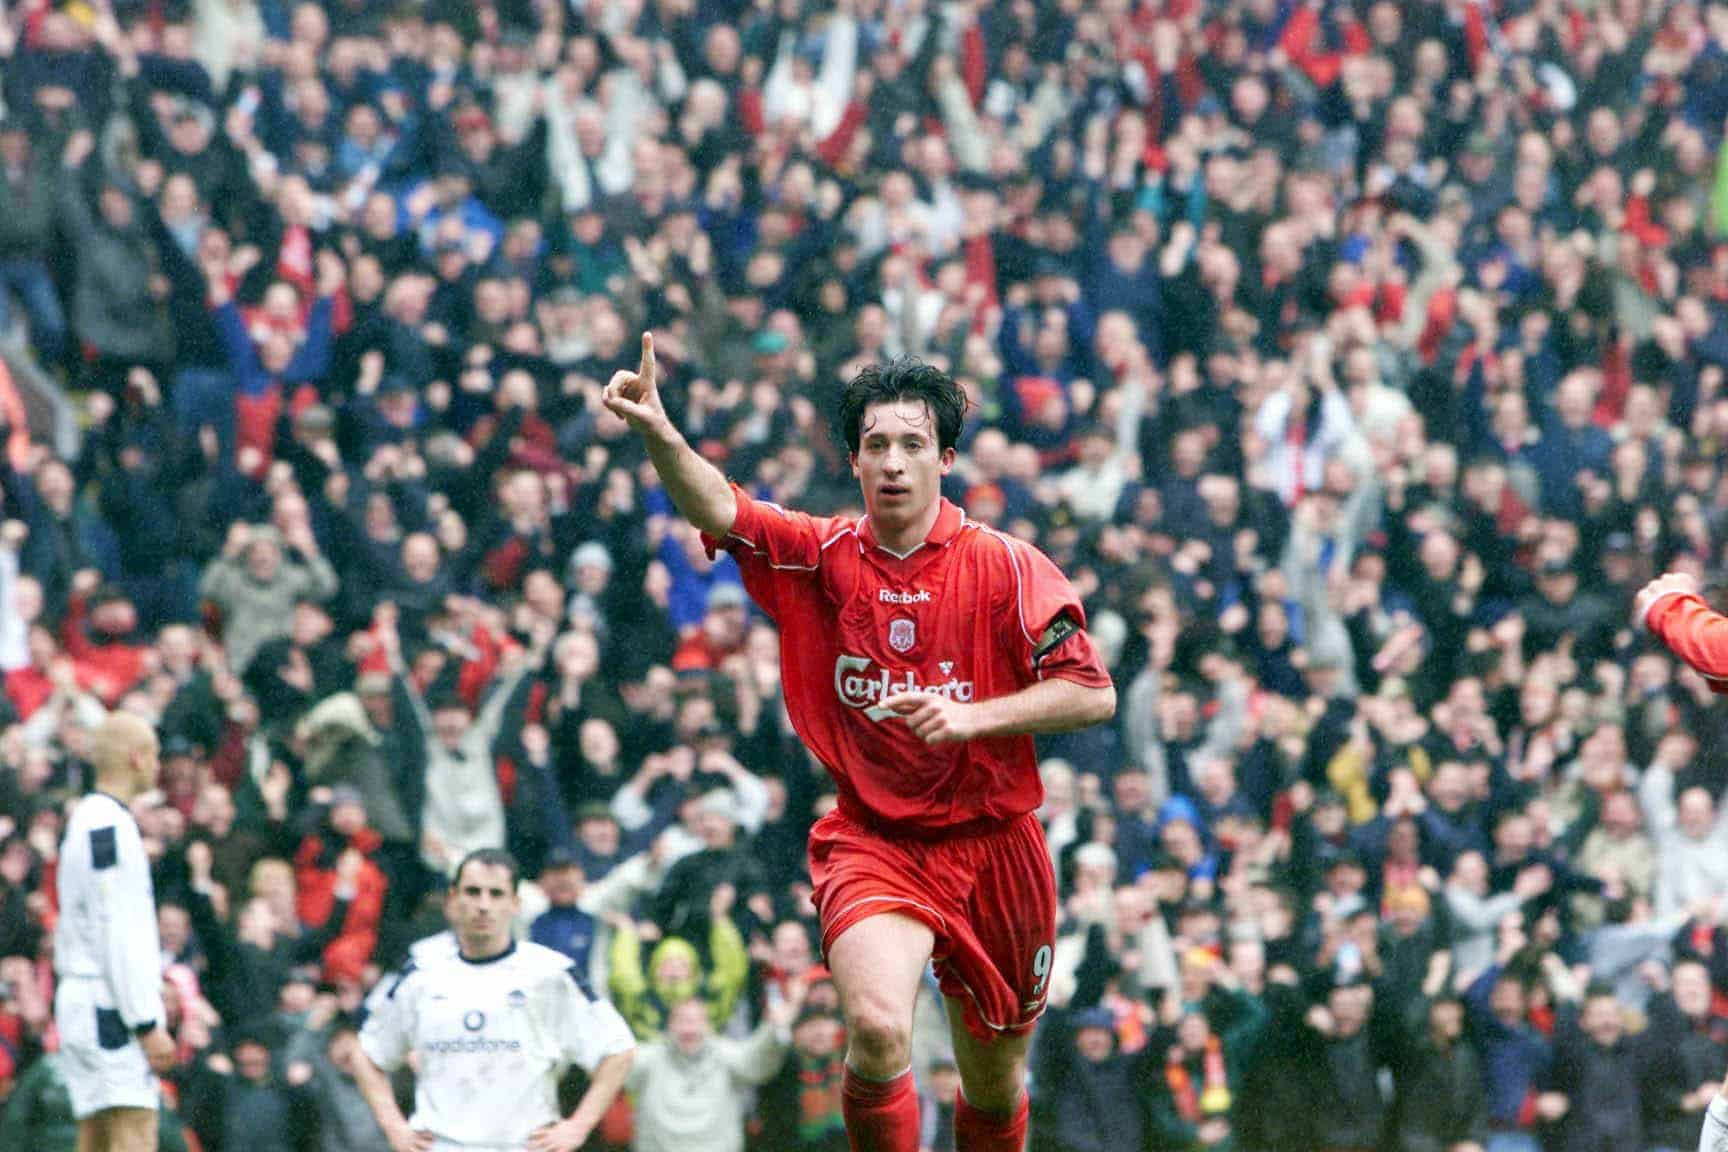 Robbie Fowler celebrates scoring Liverpool's second goal during the FA Carling Premiership game against Manchester United at Anfield, Liverpool.